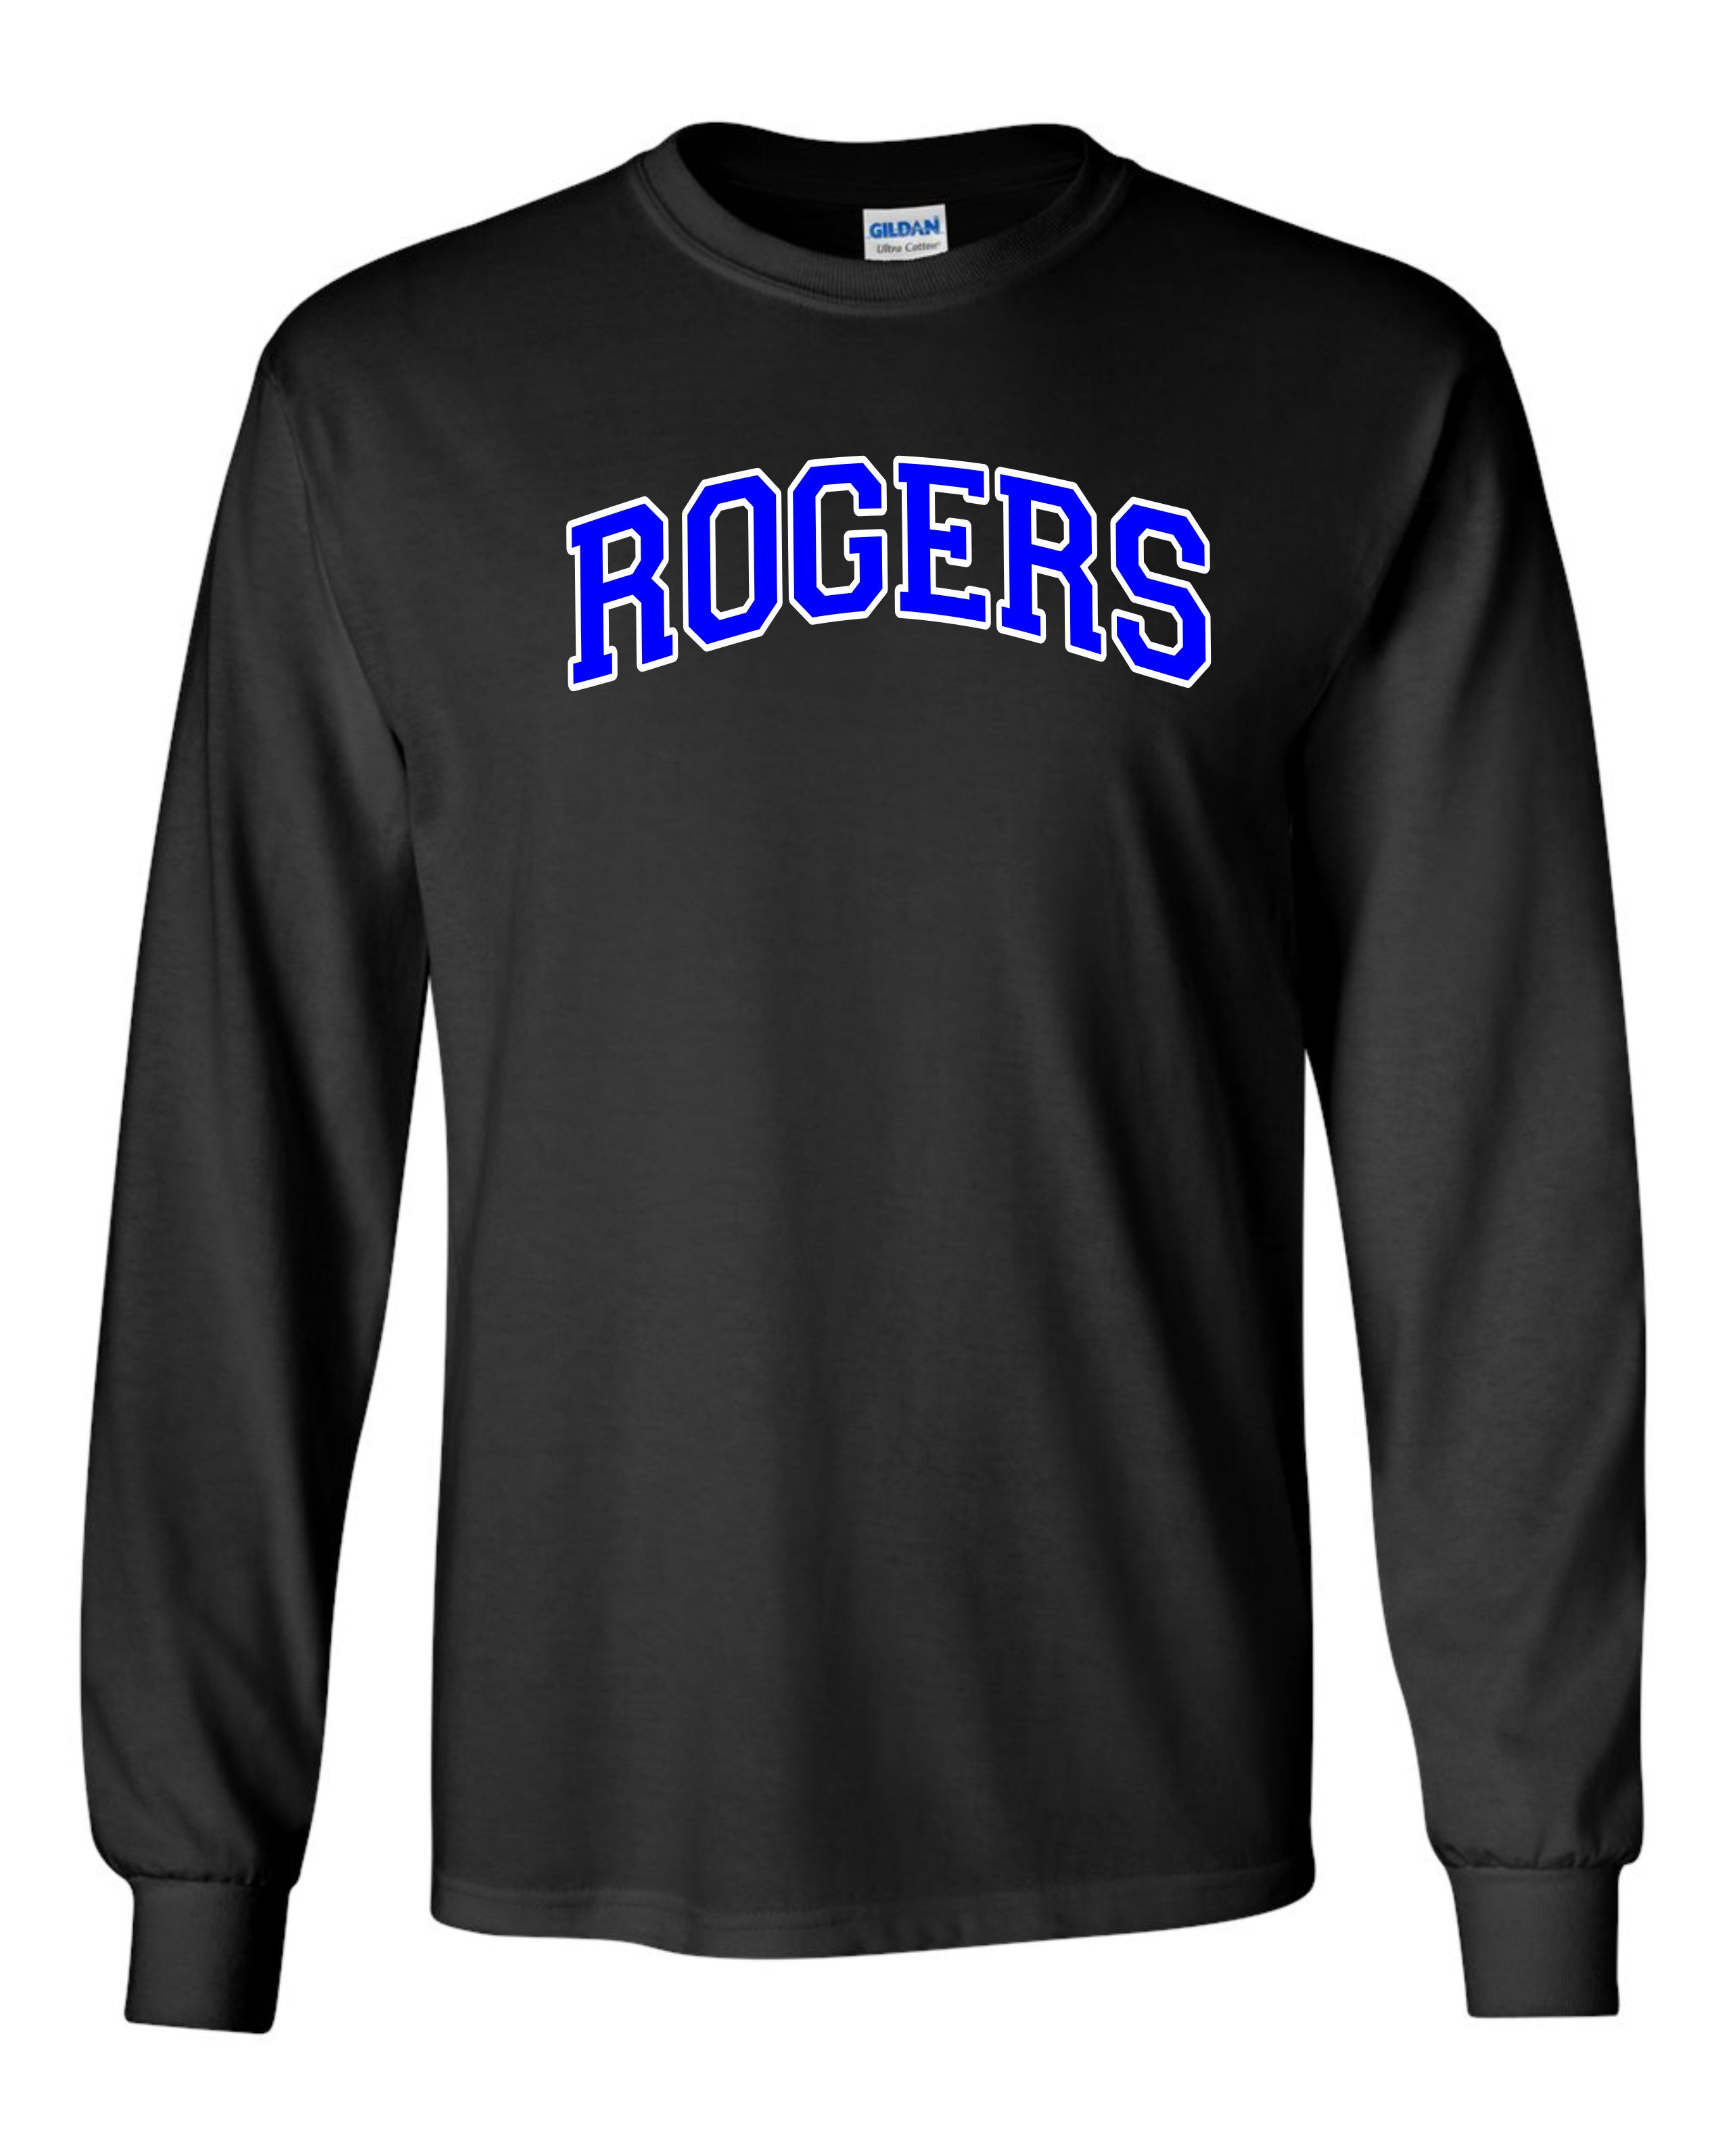 Long sleeve cotton t shirt for Long sleeve cotton tee shirts